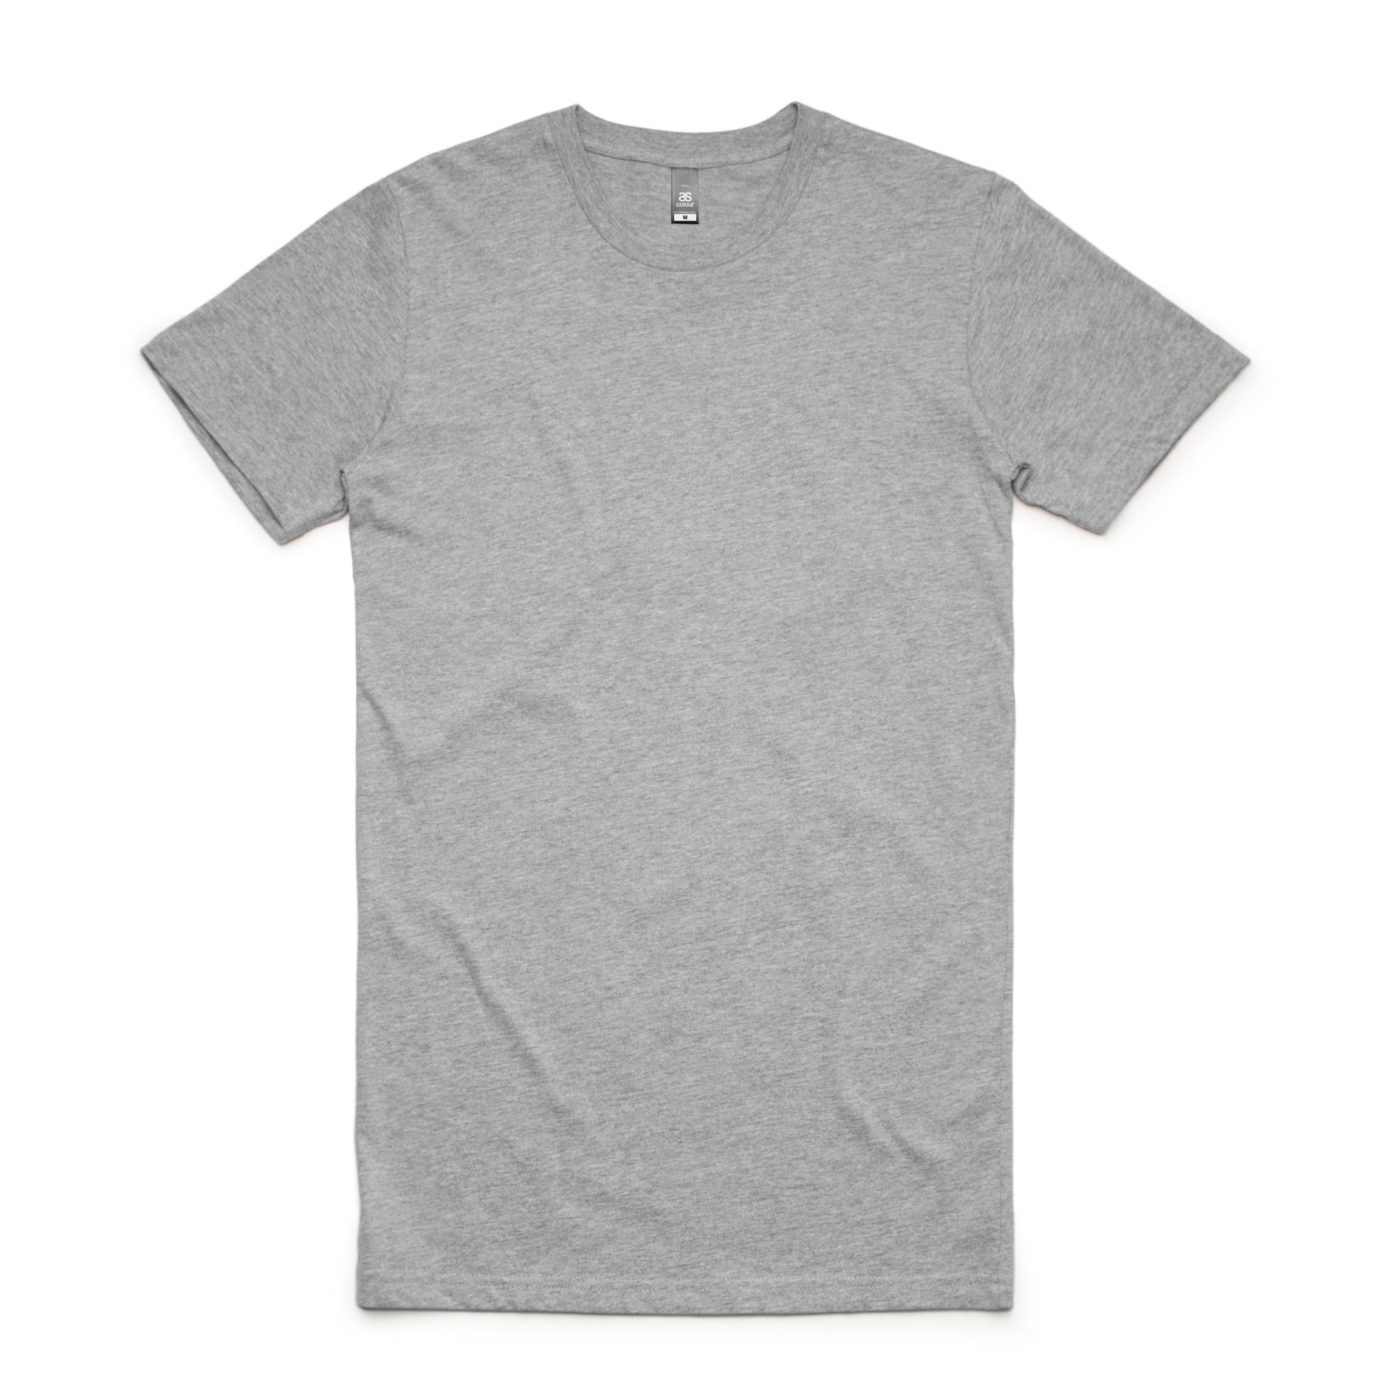 Grey Marl AS Colour AS5013 Tall Tee longer length tee great to print or embroider